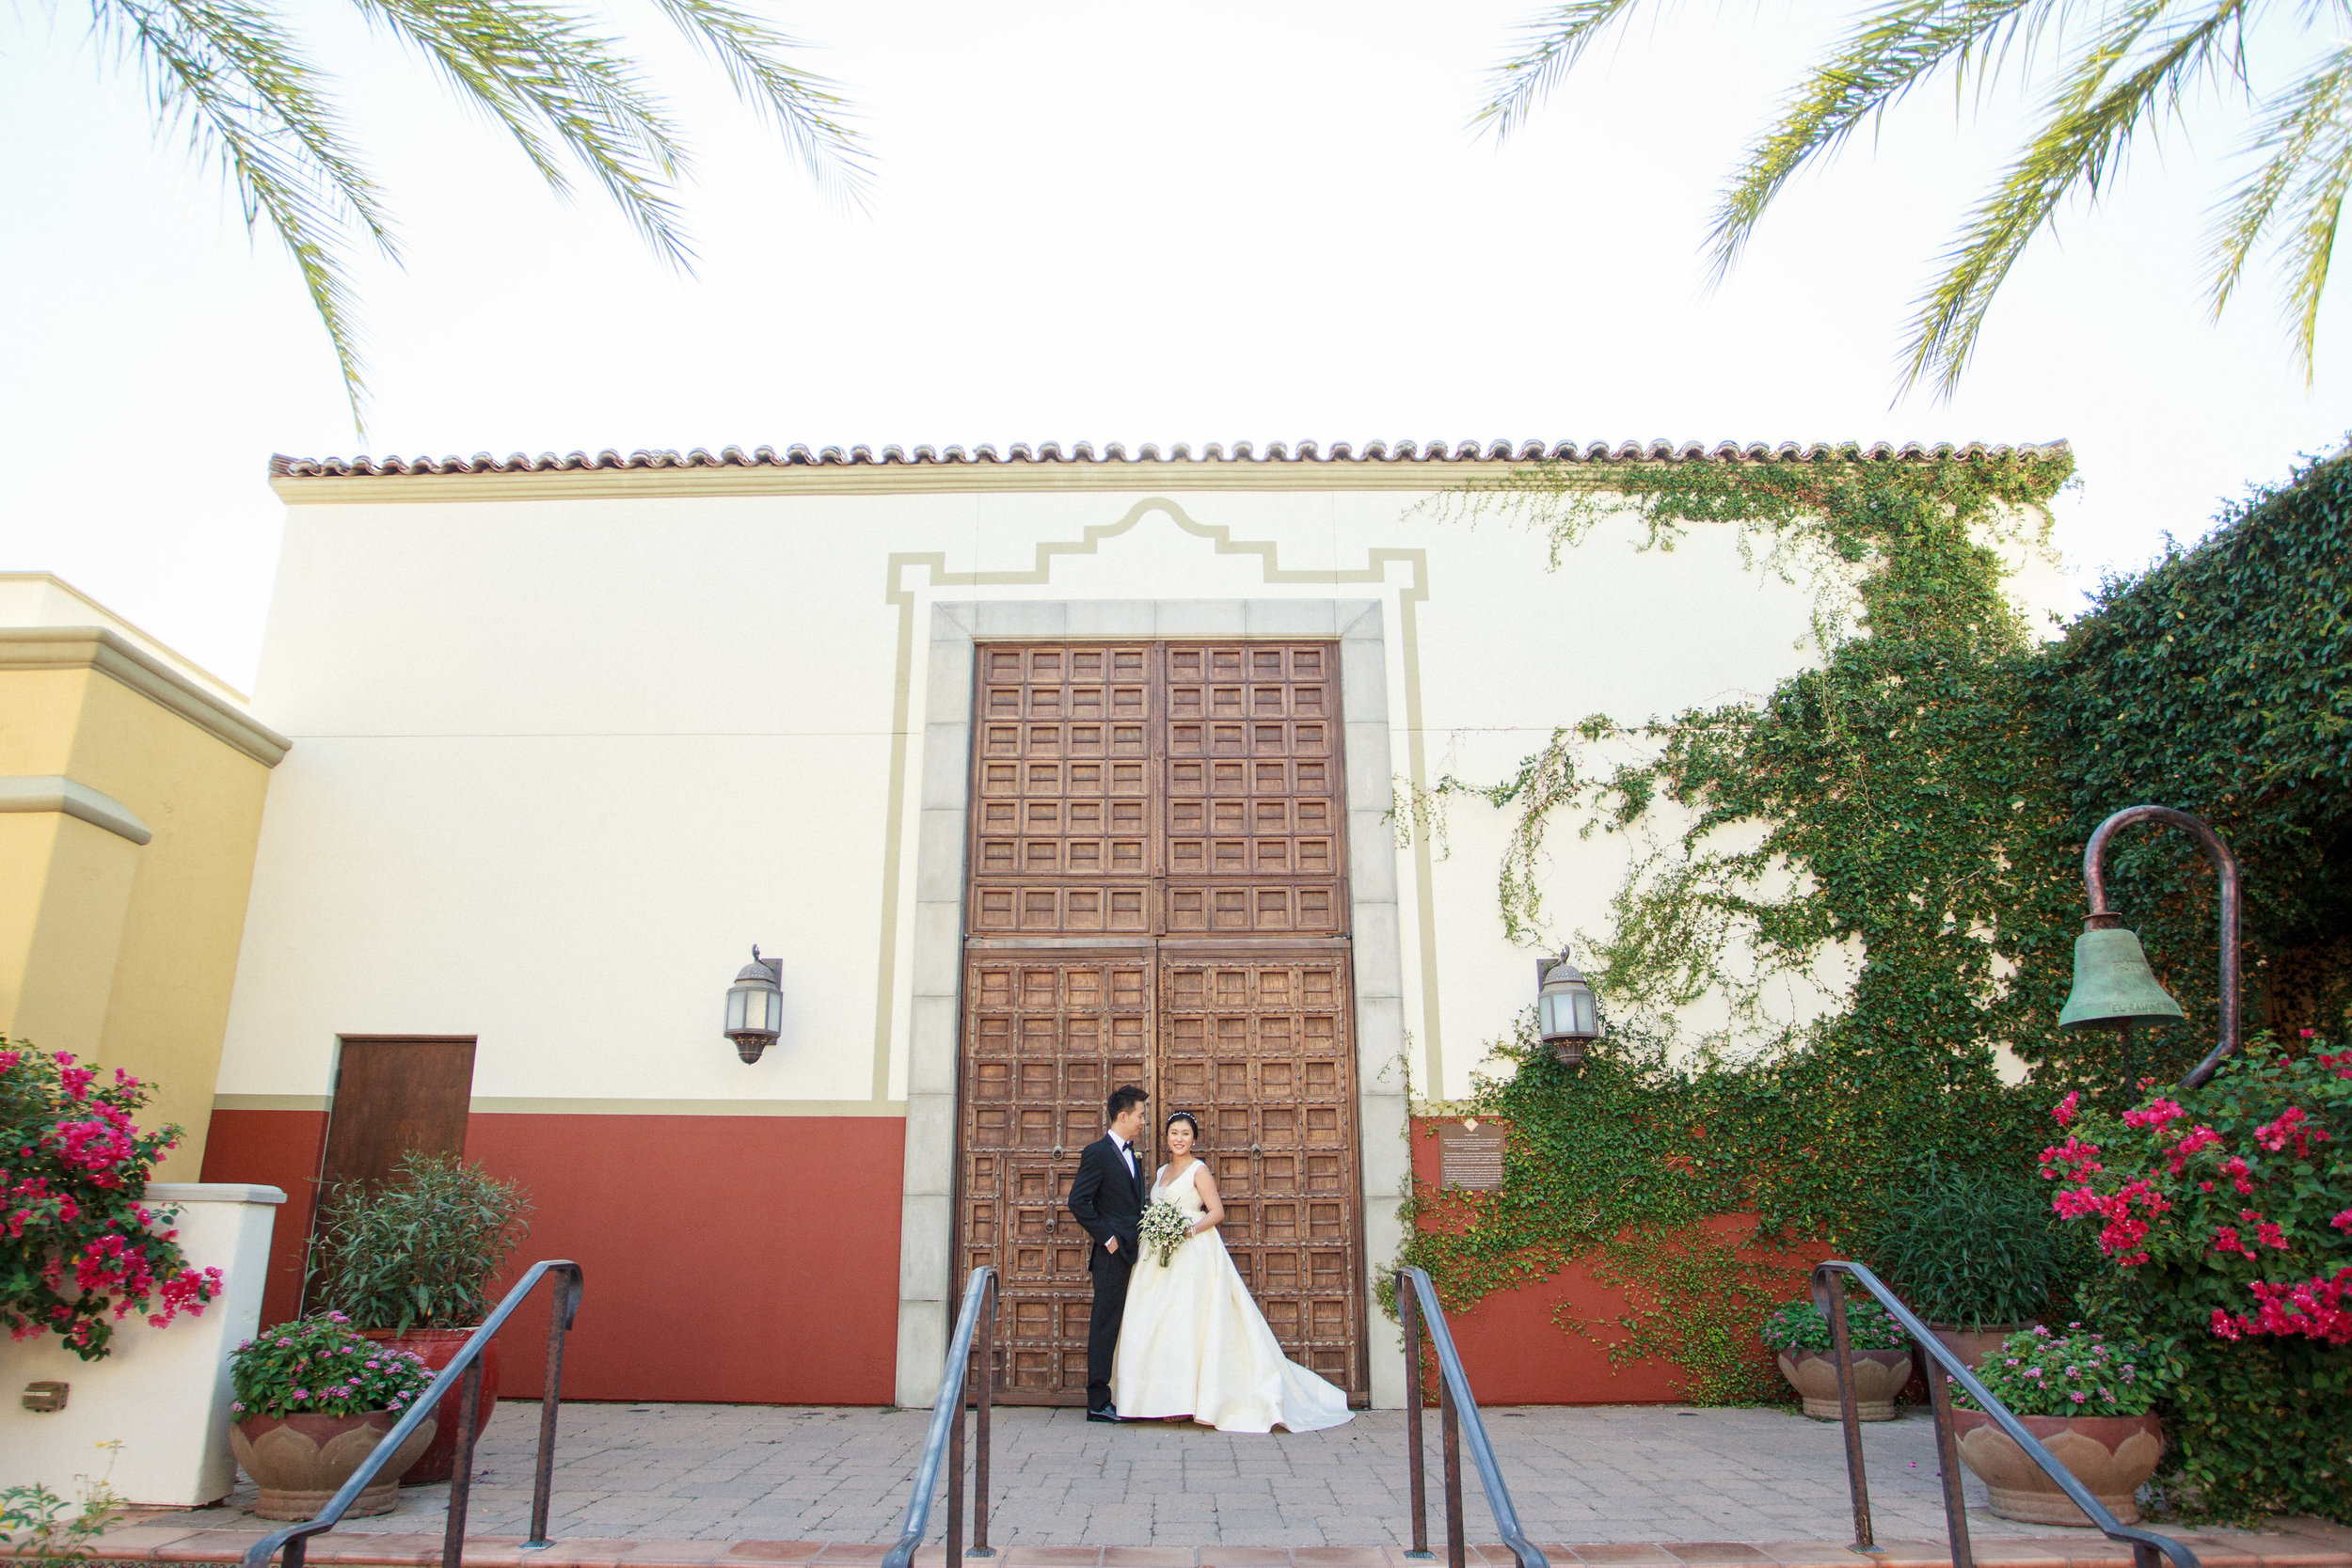 arizona wedding planner scottsdale wedding coordinator destination wedding desert wedding invitation garden